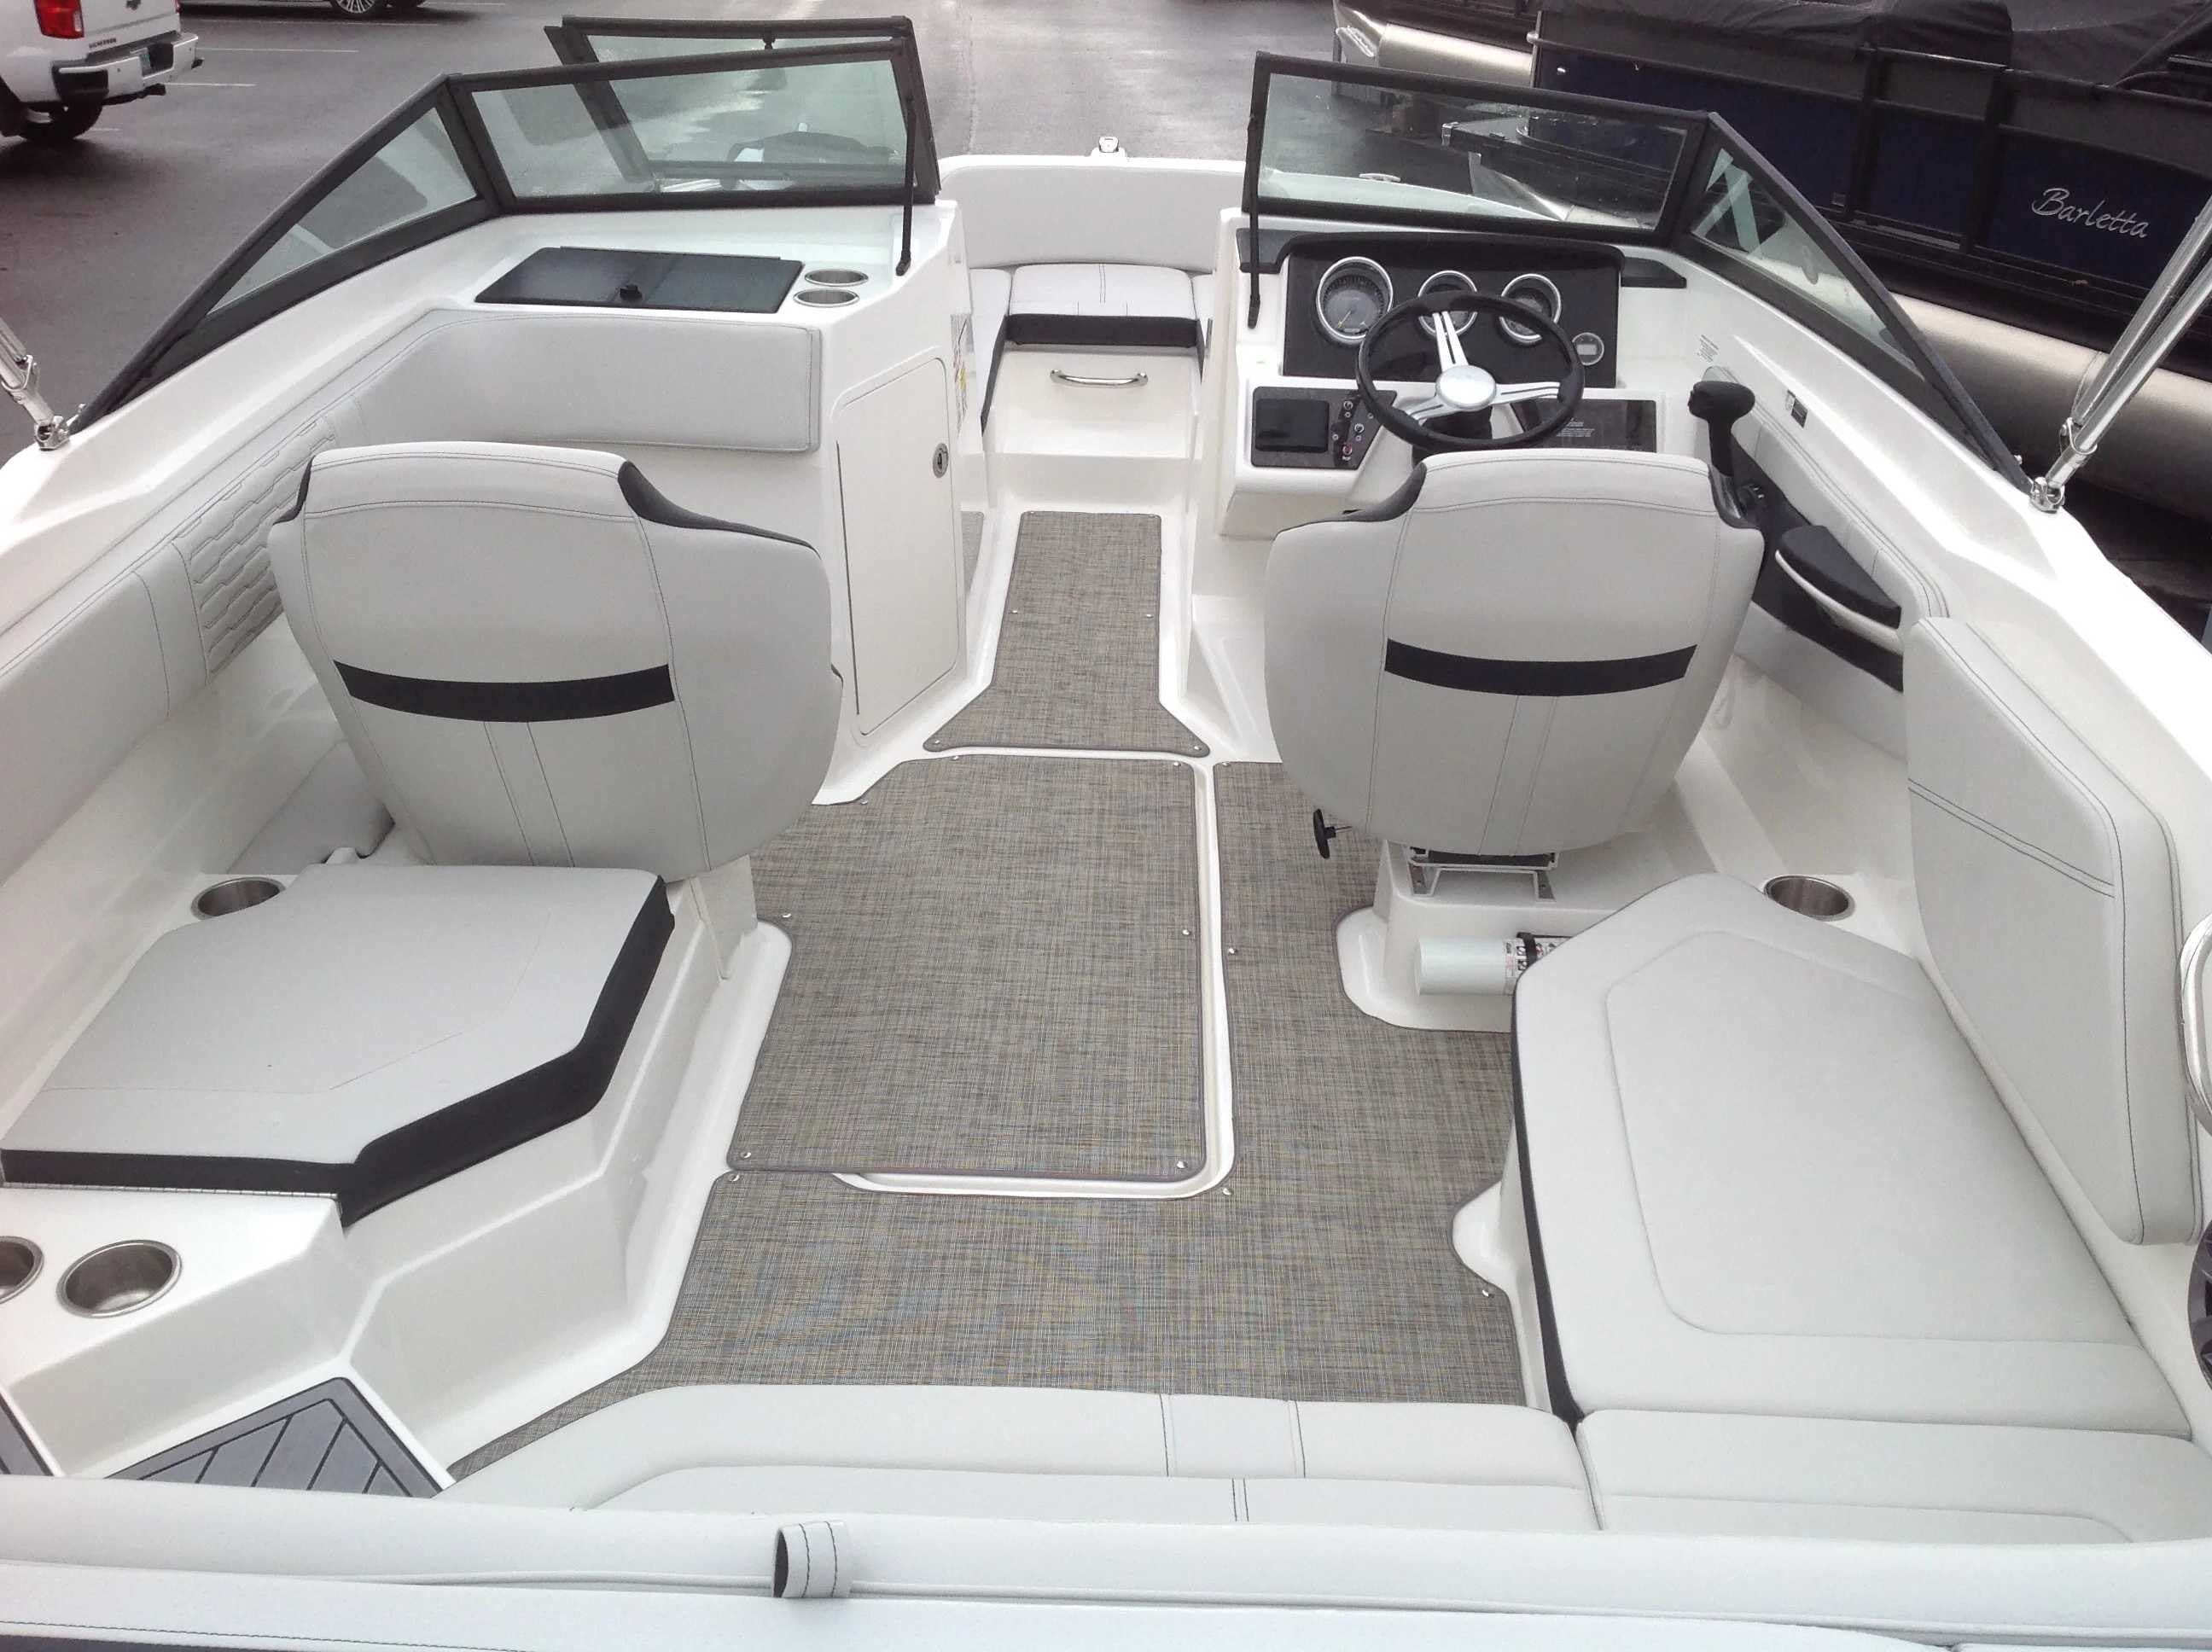 2021 Sea Ray boat for sale, model of the boat is 210 SPX & Image # 10 of 12